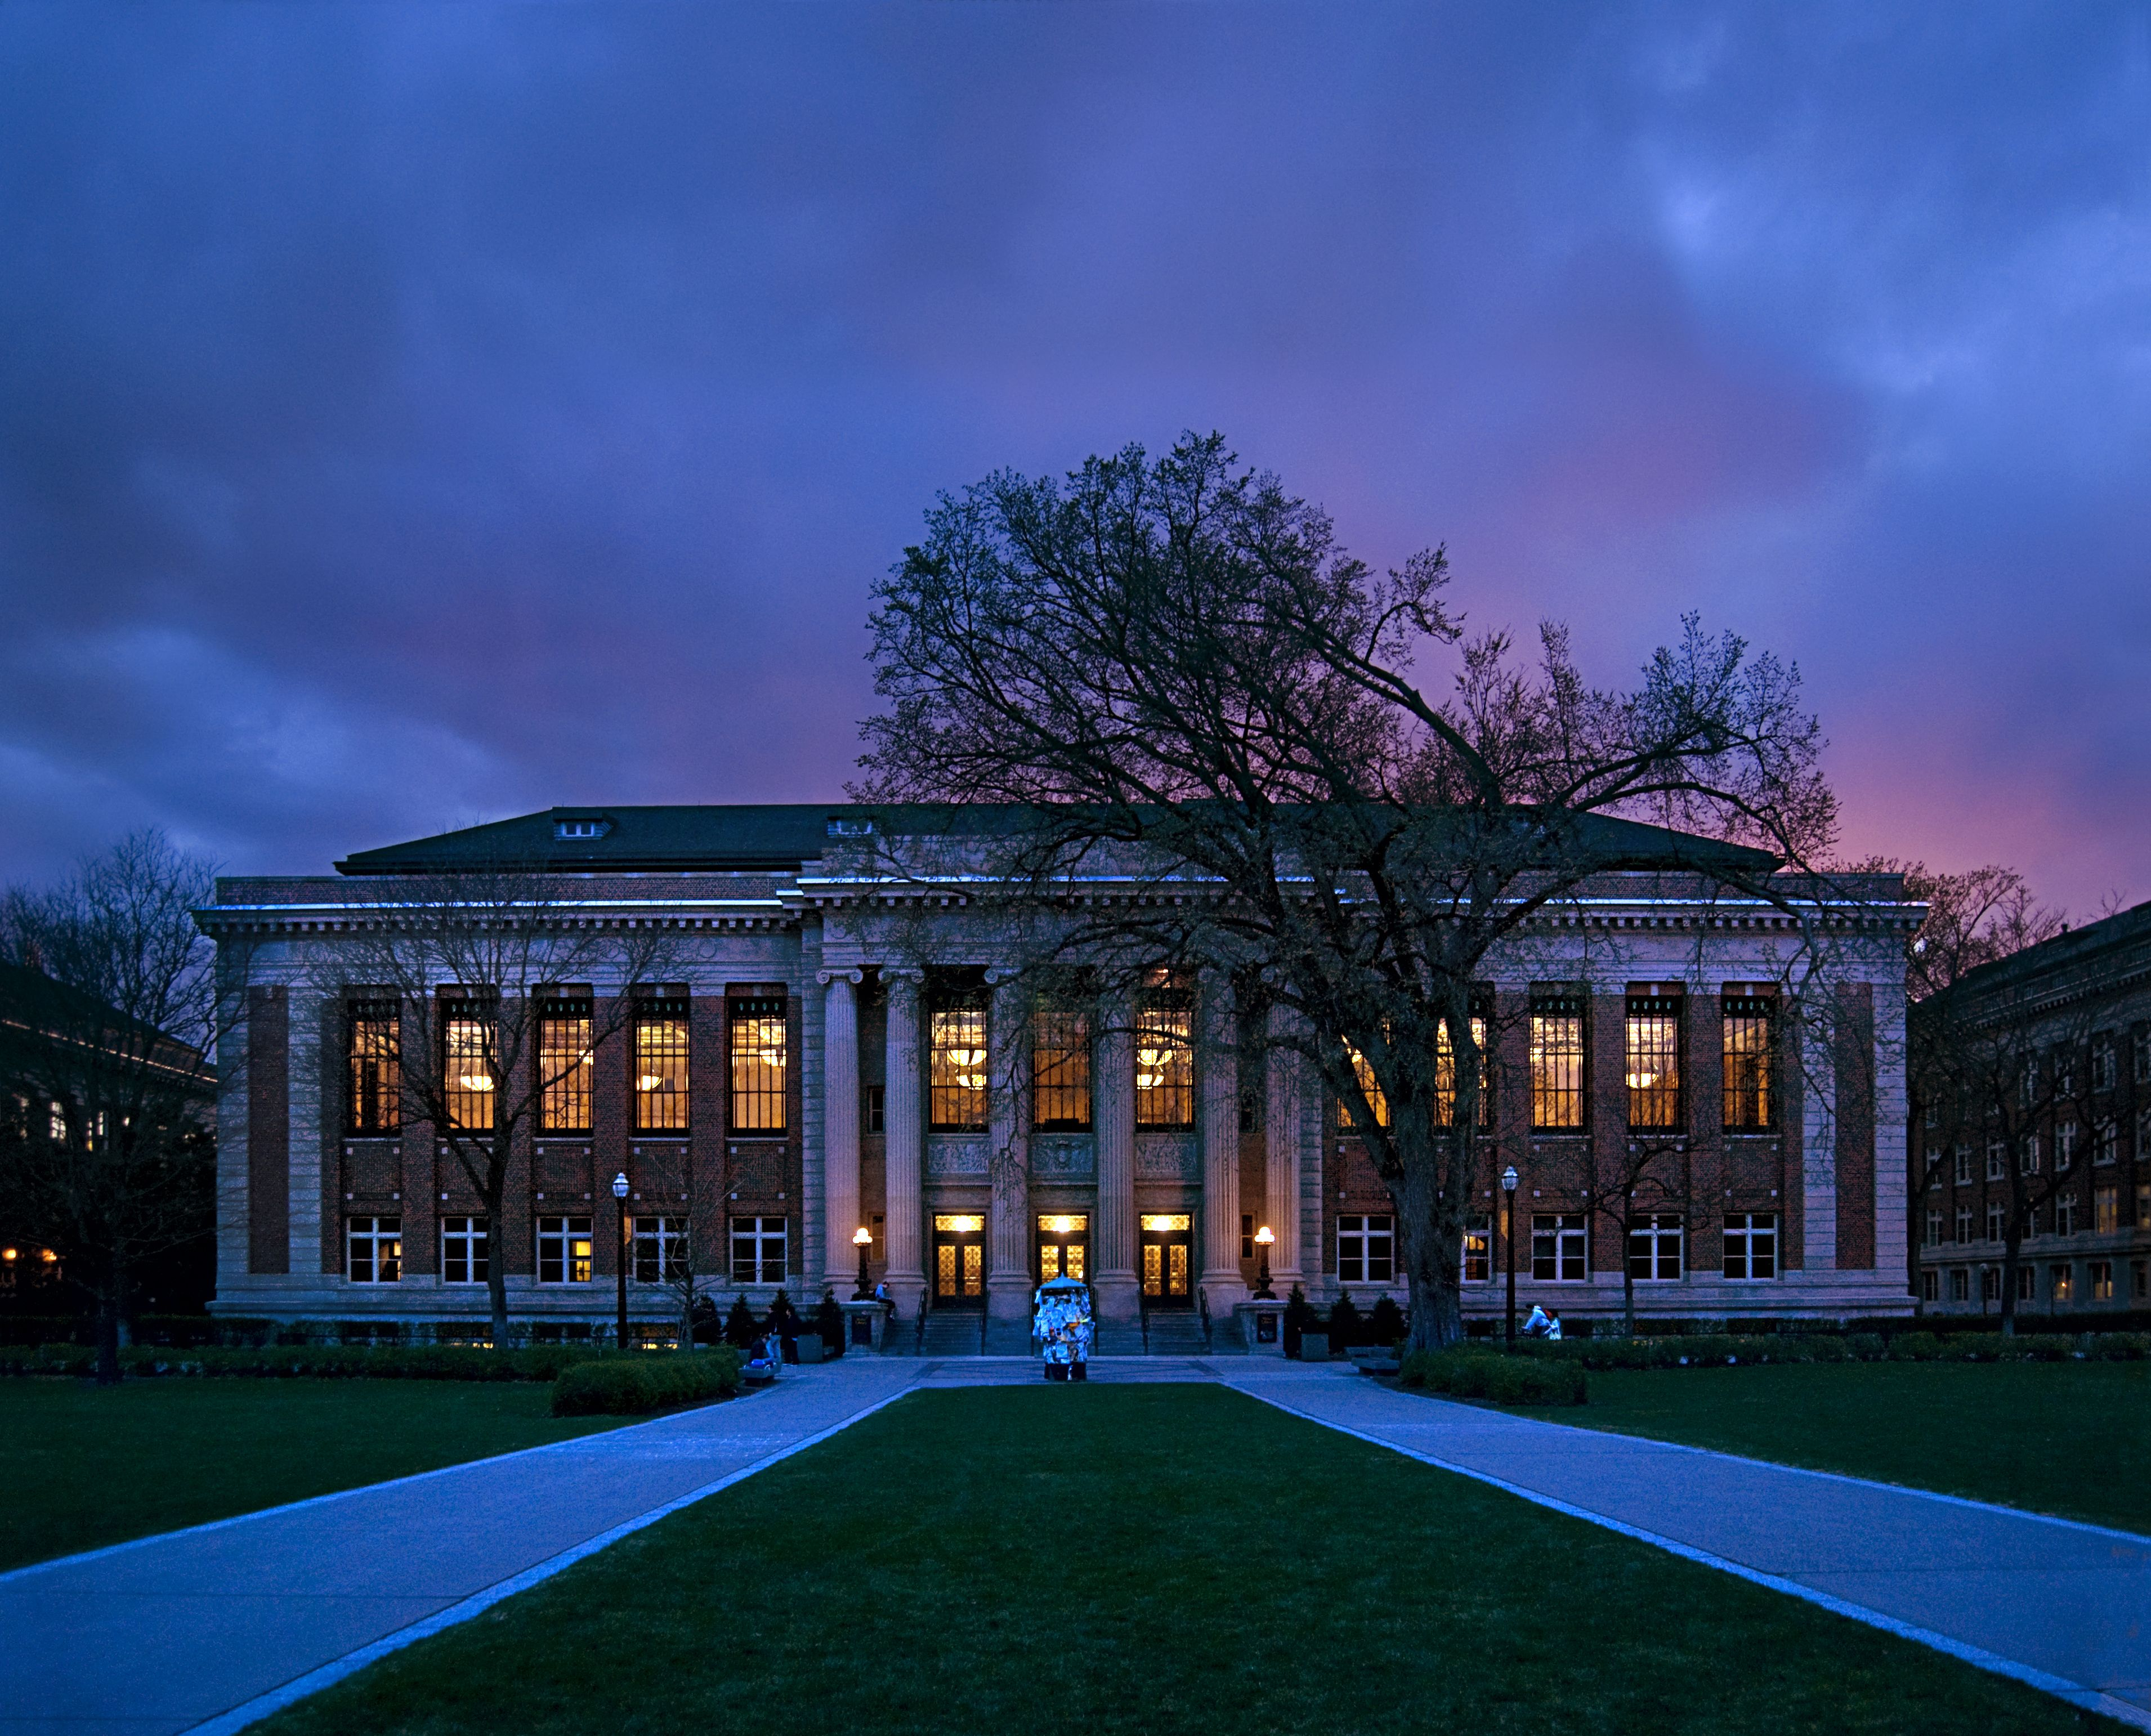 Walter Library At Sunset #umn #umncampus